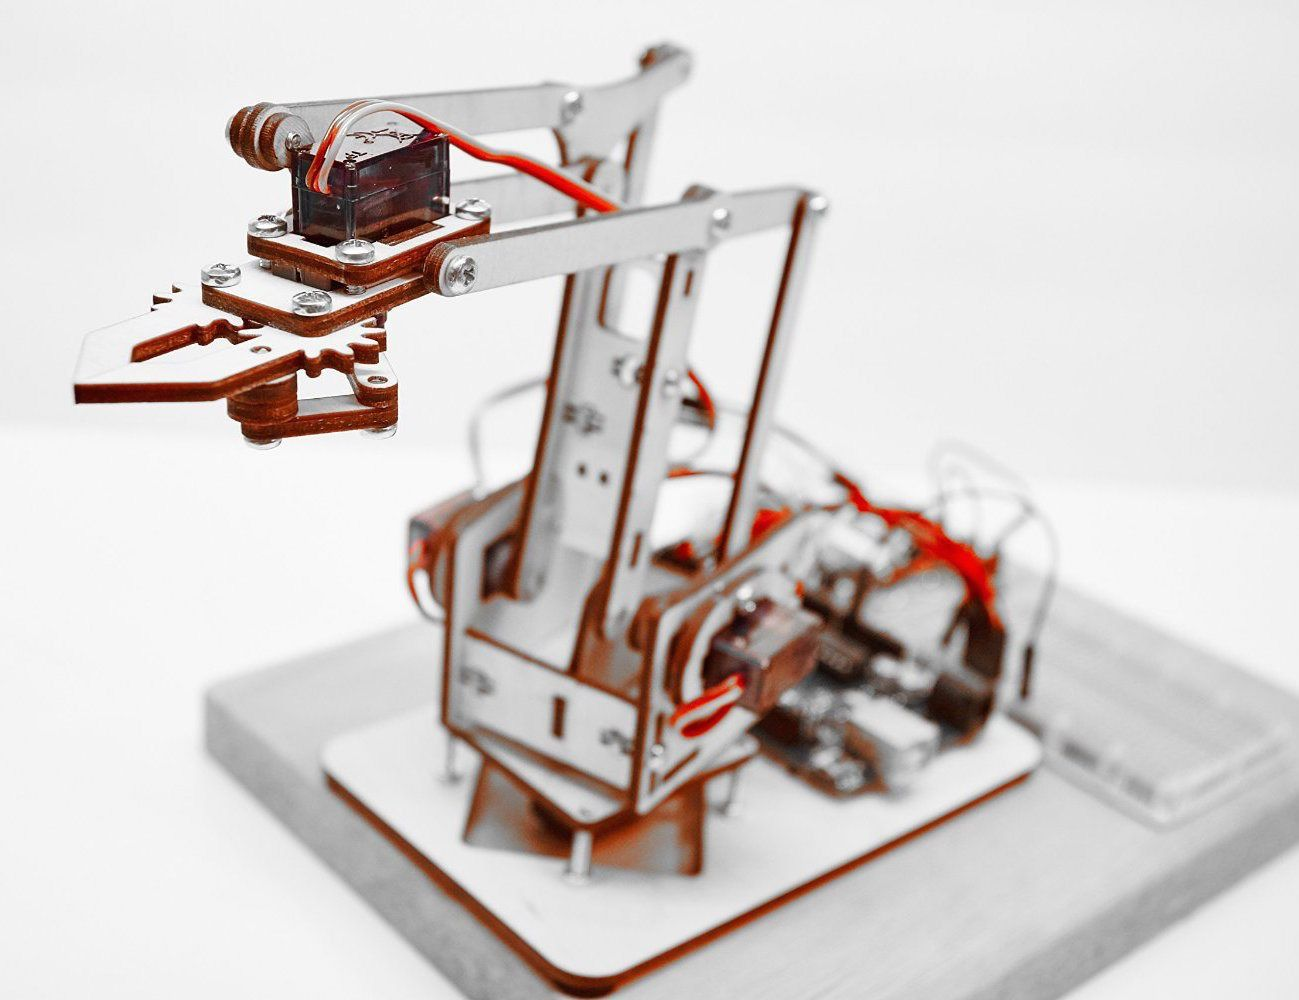 Get Introduced To Industrial Robotics And Motion Control